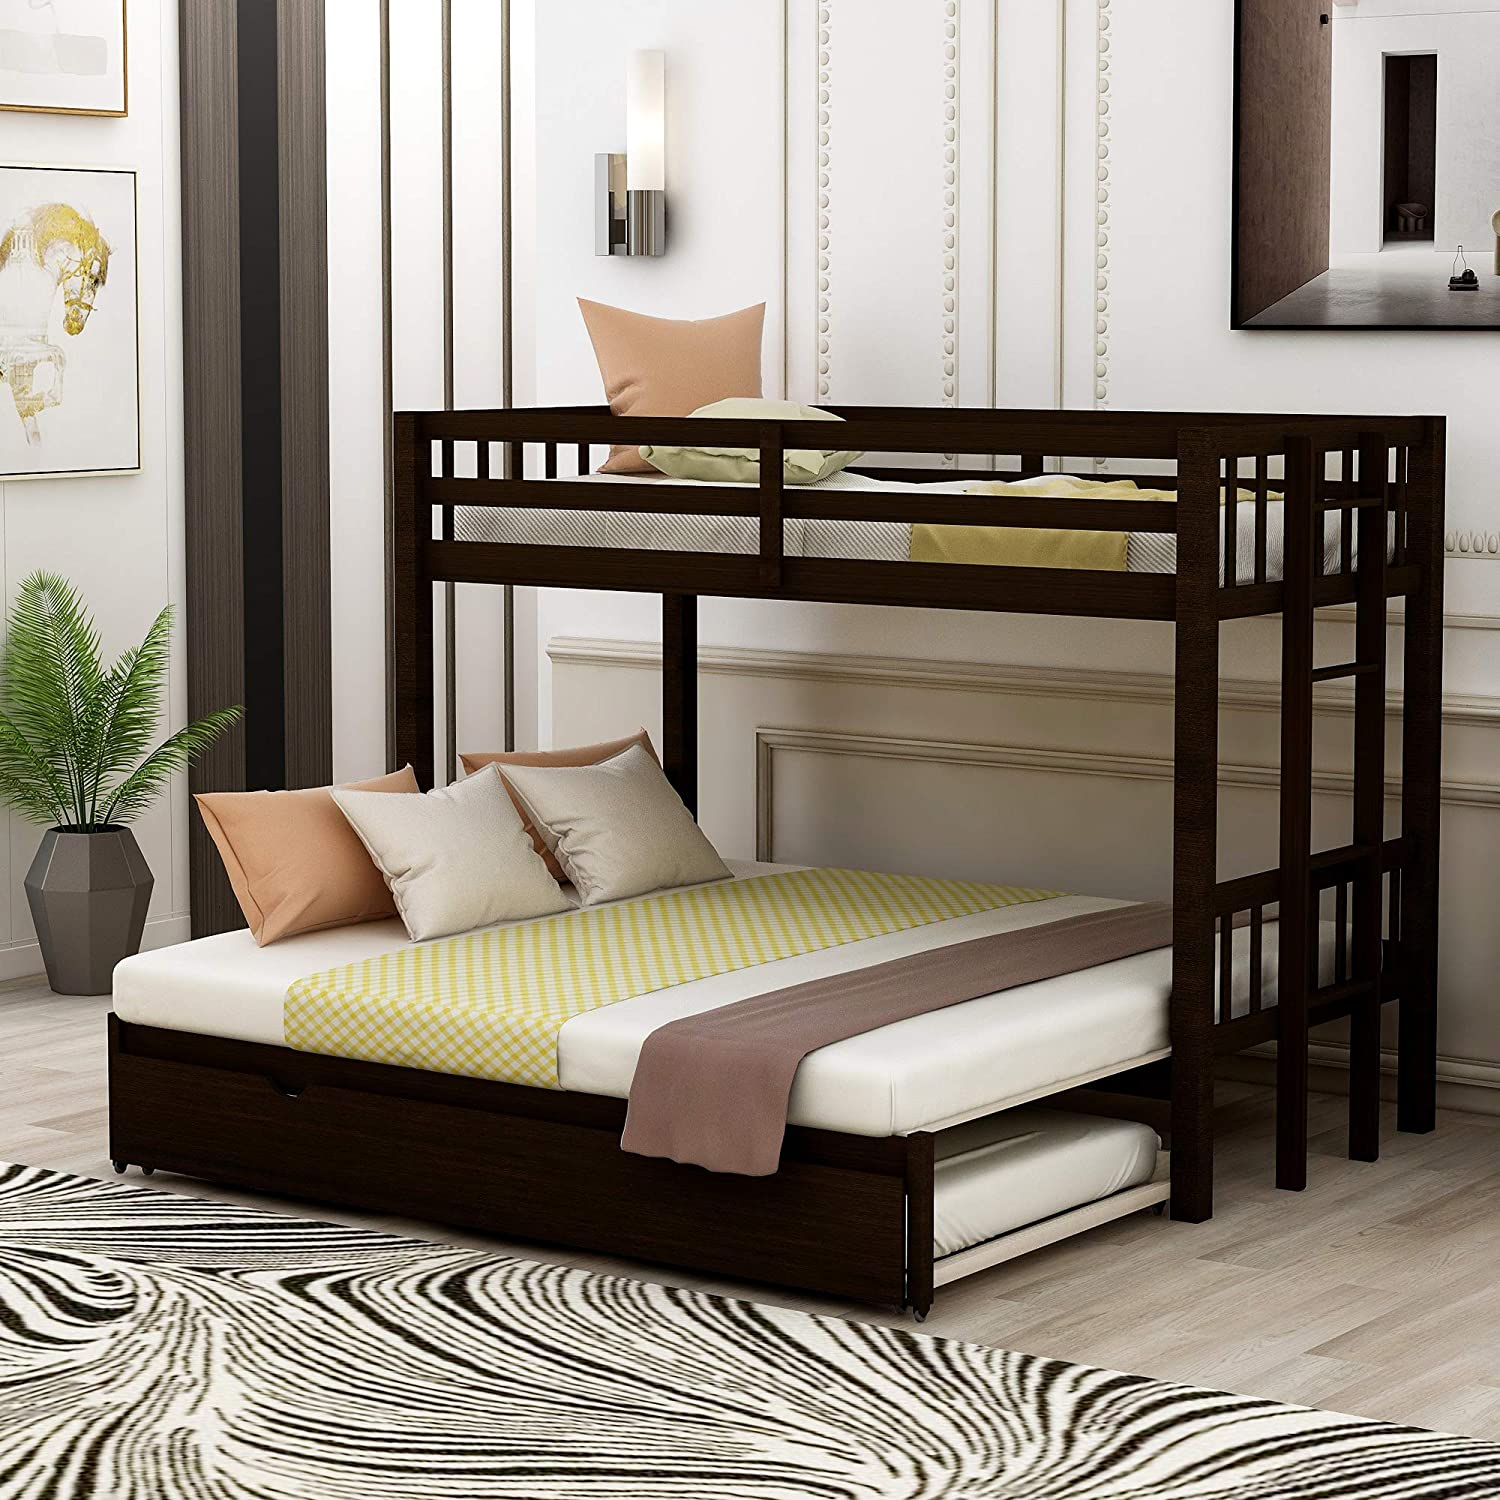 Amazon Com Bunk Beds 79 5 Twin Over Pull Out Bunk Bed With Trundle Solid Wood Twin Over Twin Bunk Bed With Safety Guard Rail For Kids Teens No Box Spring Needed Space Saving Design Espresso Kitchen